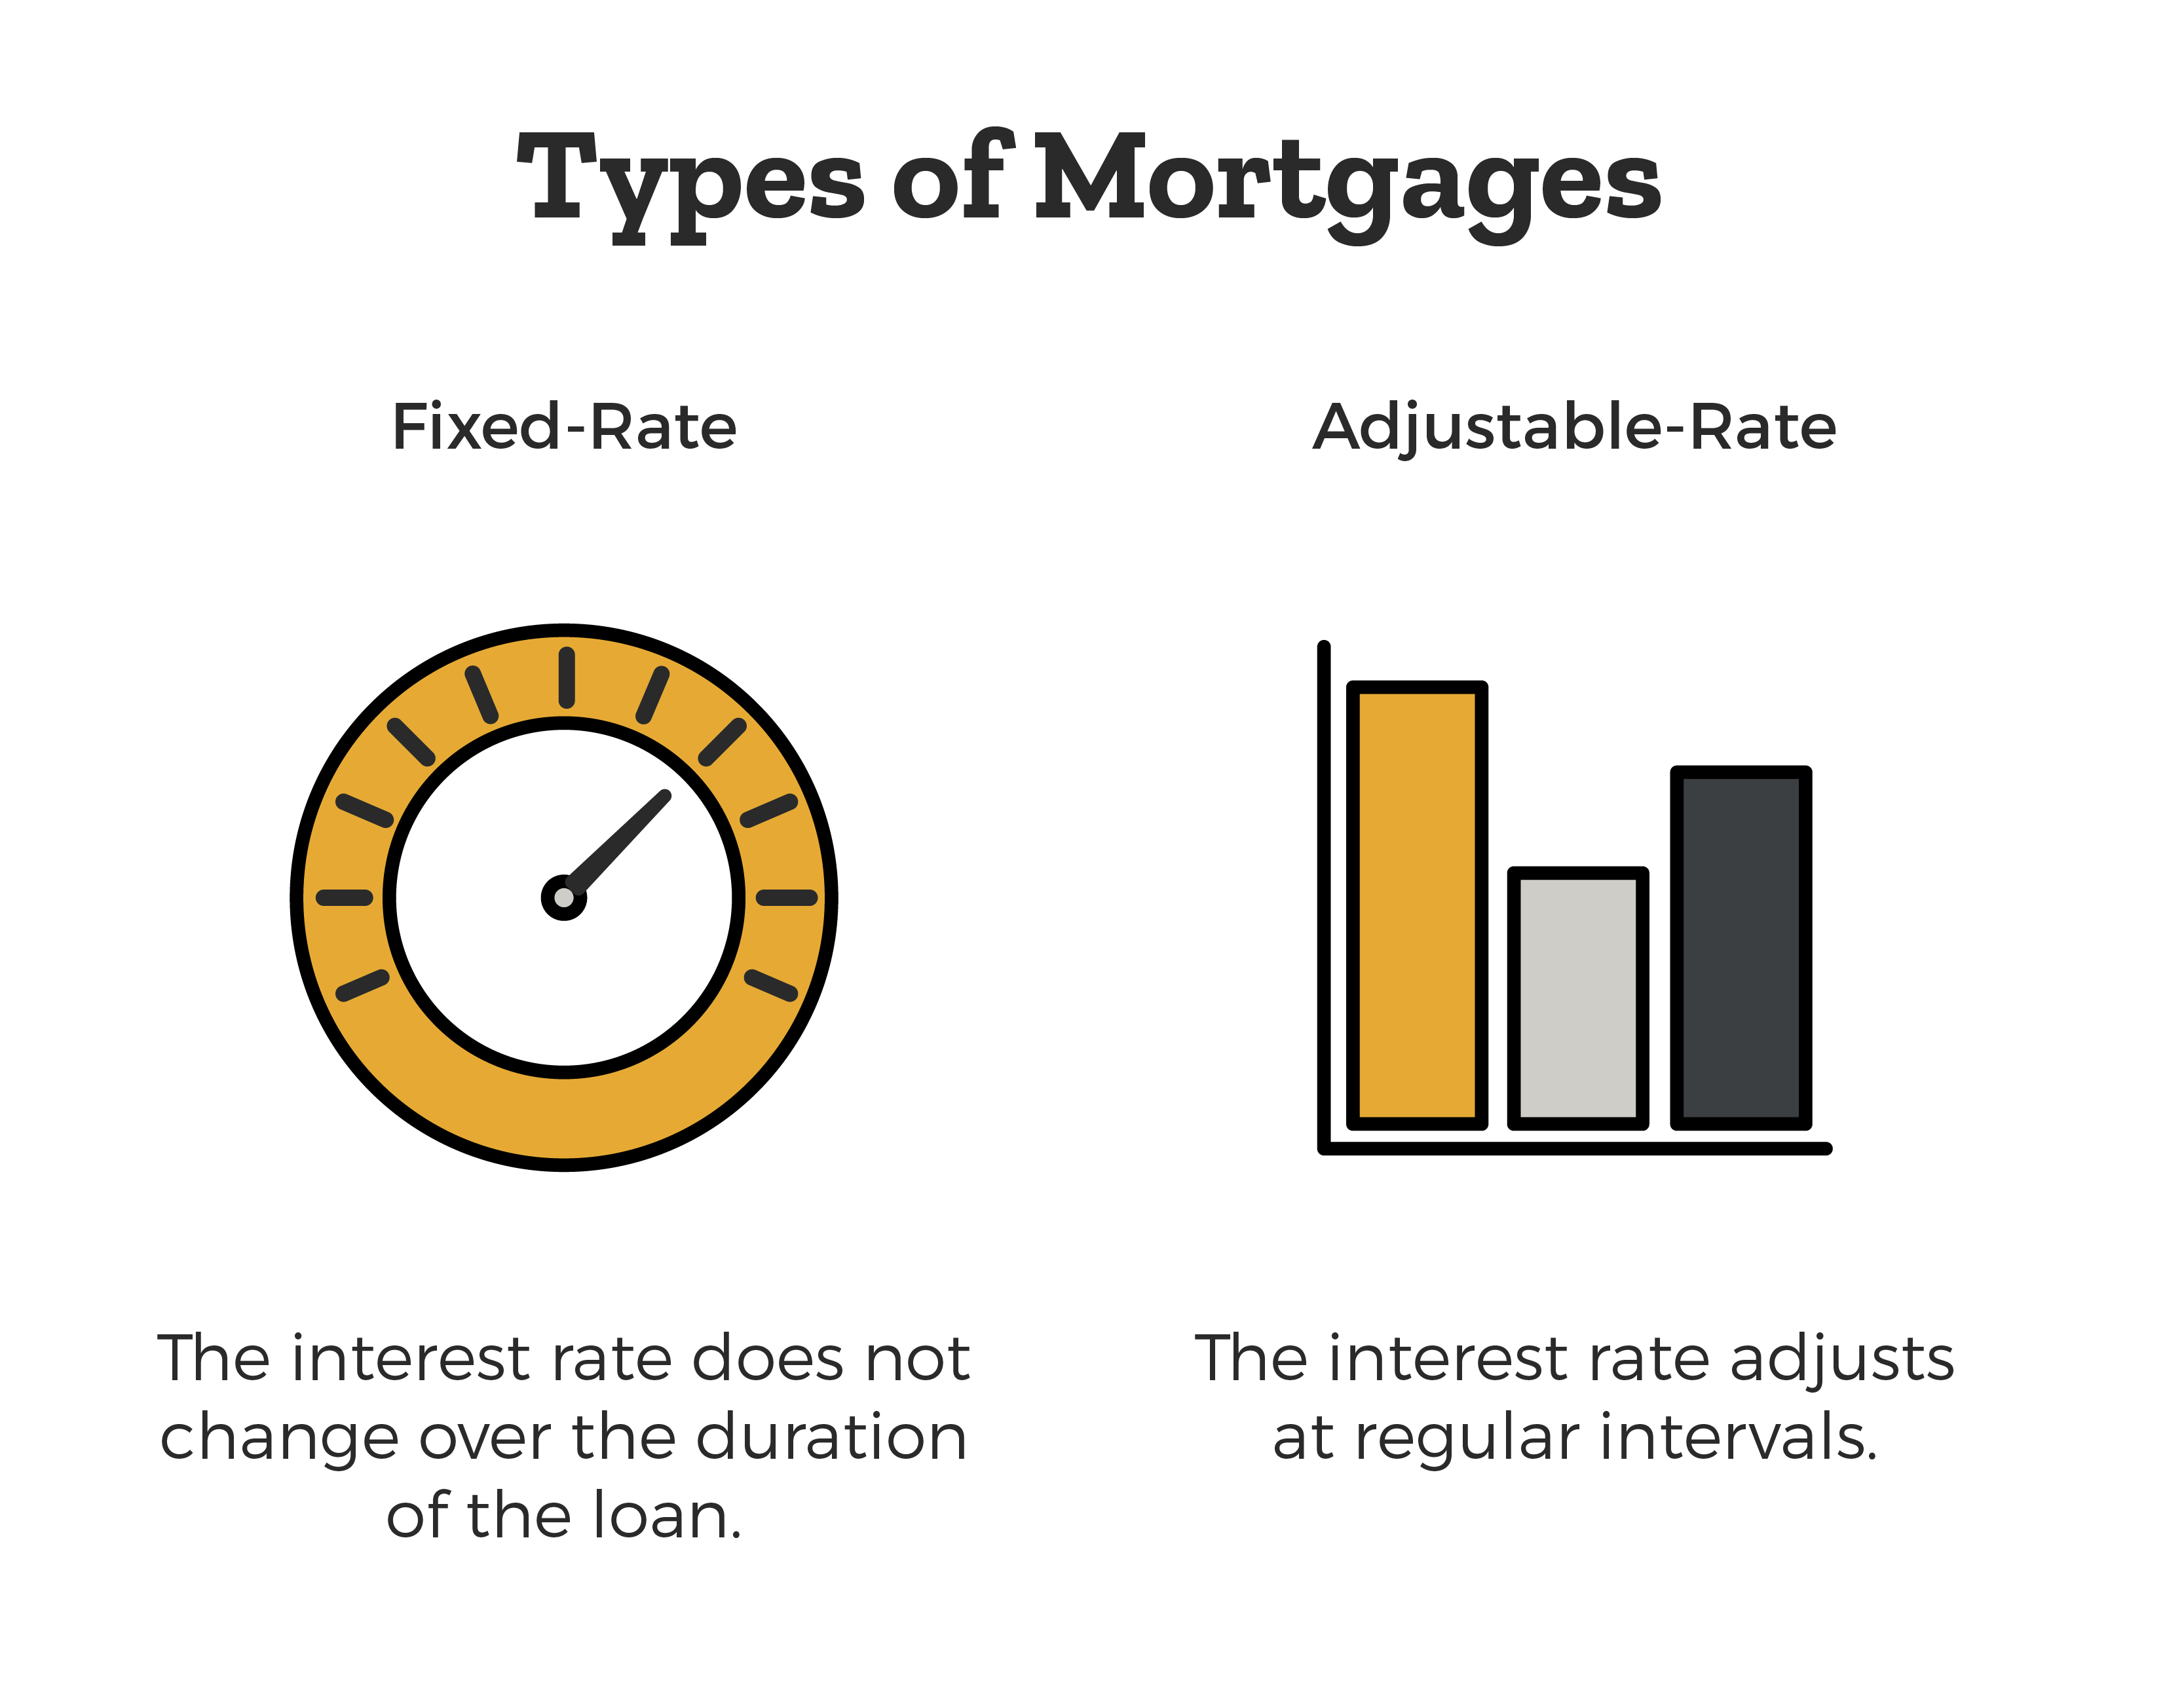 Types of Mortgages: Fixed Rate, which is the interest rate does not change over the duration of the loans. And Adjustable rate, which is the interest rate adjusts at regular intervals.